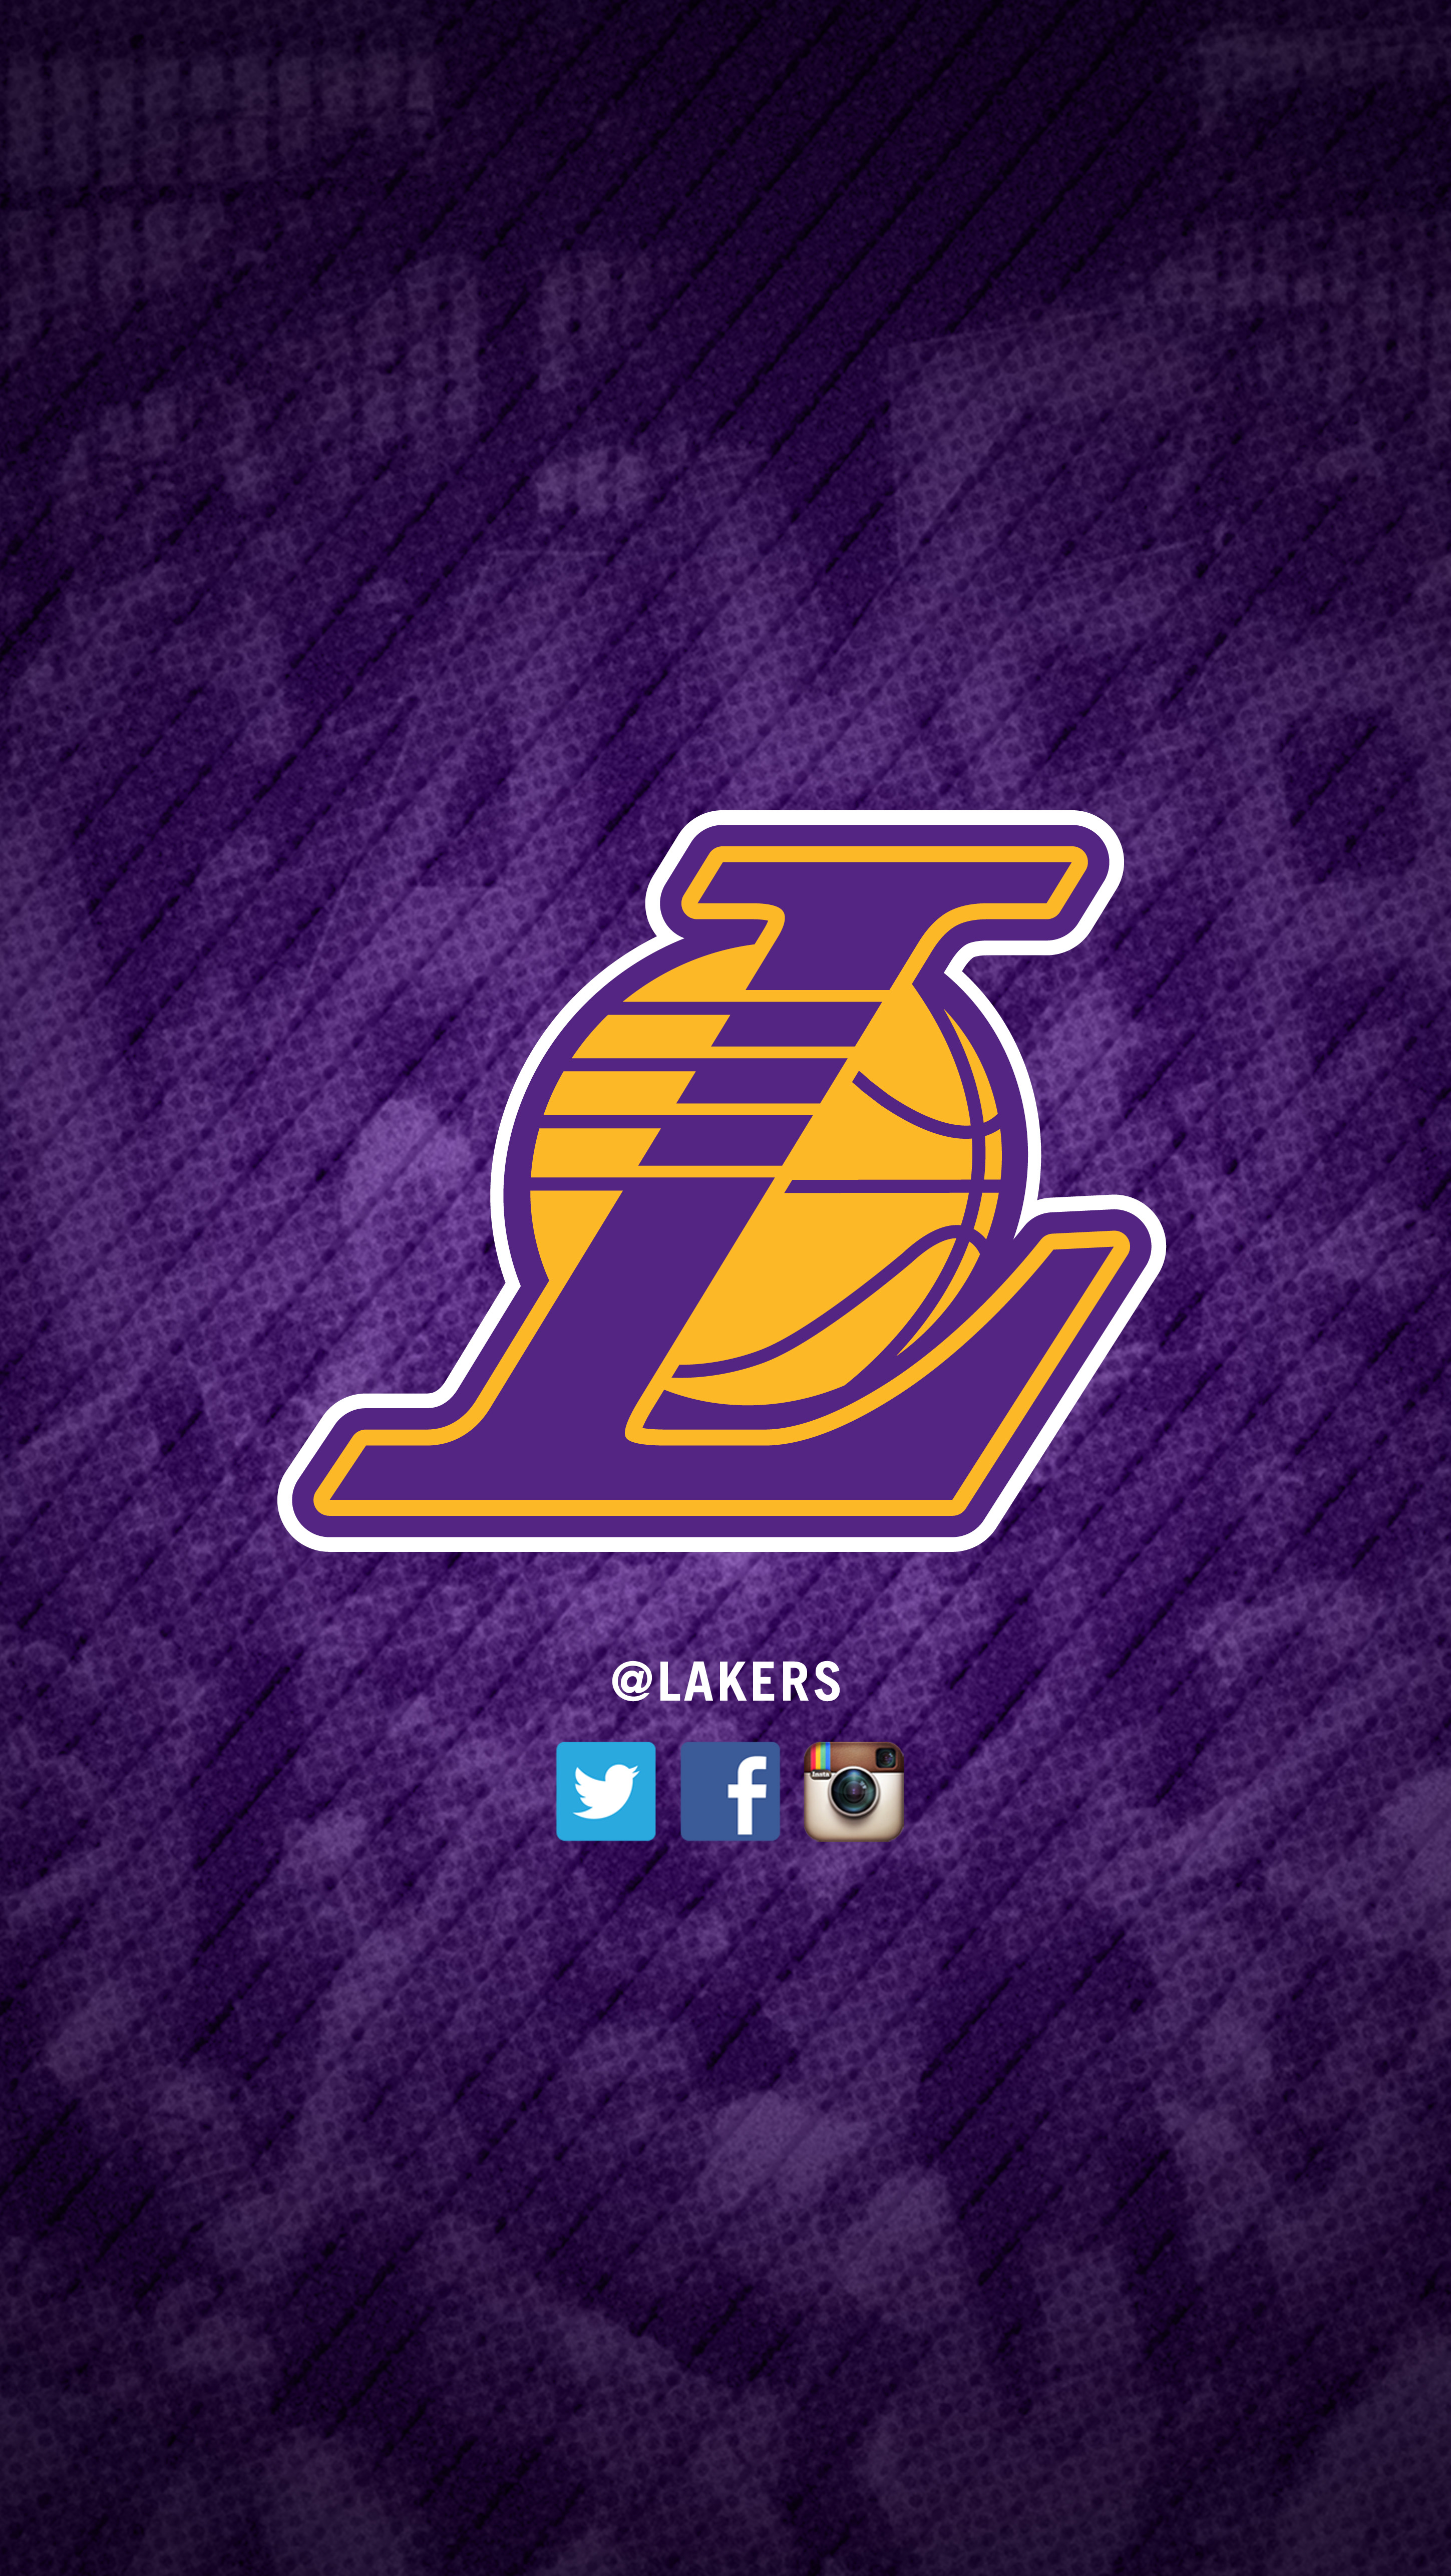 Lakers mobile wallpapers los angeles lakers get purple version 2 wallpaper voltagebd Image collections